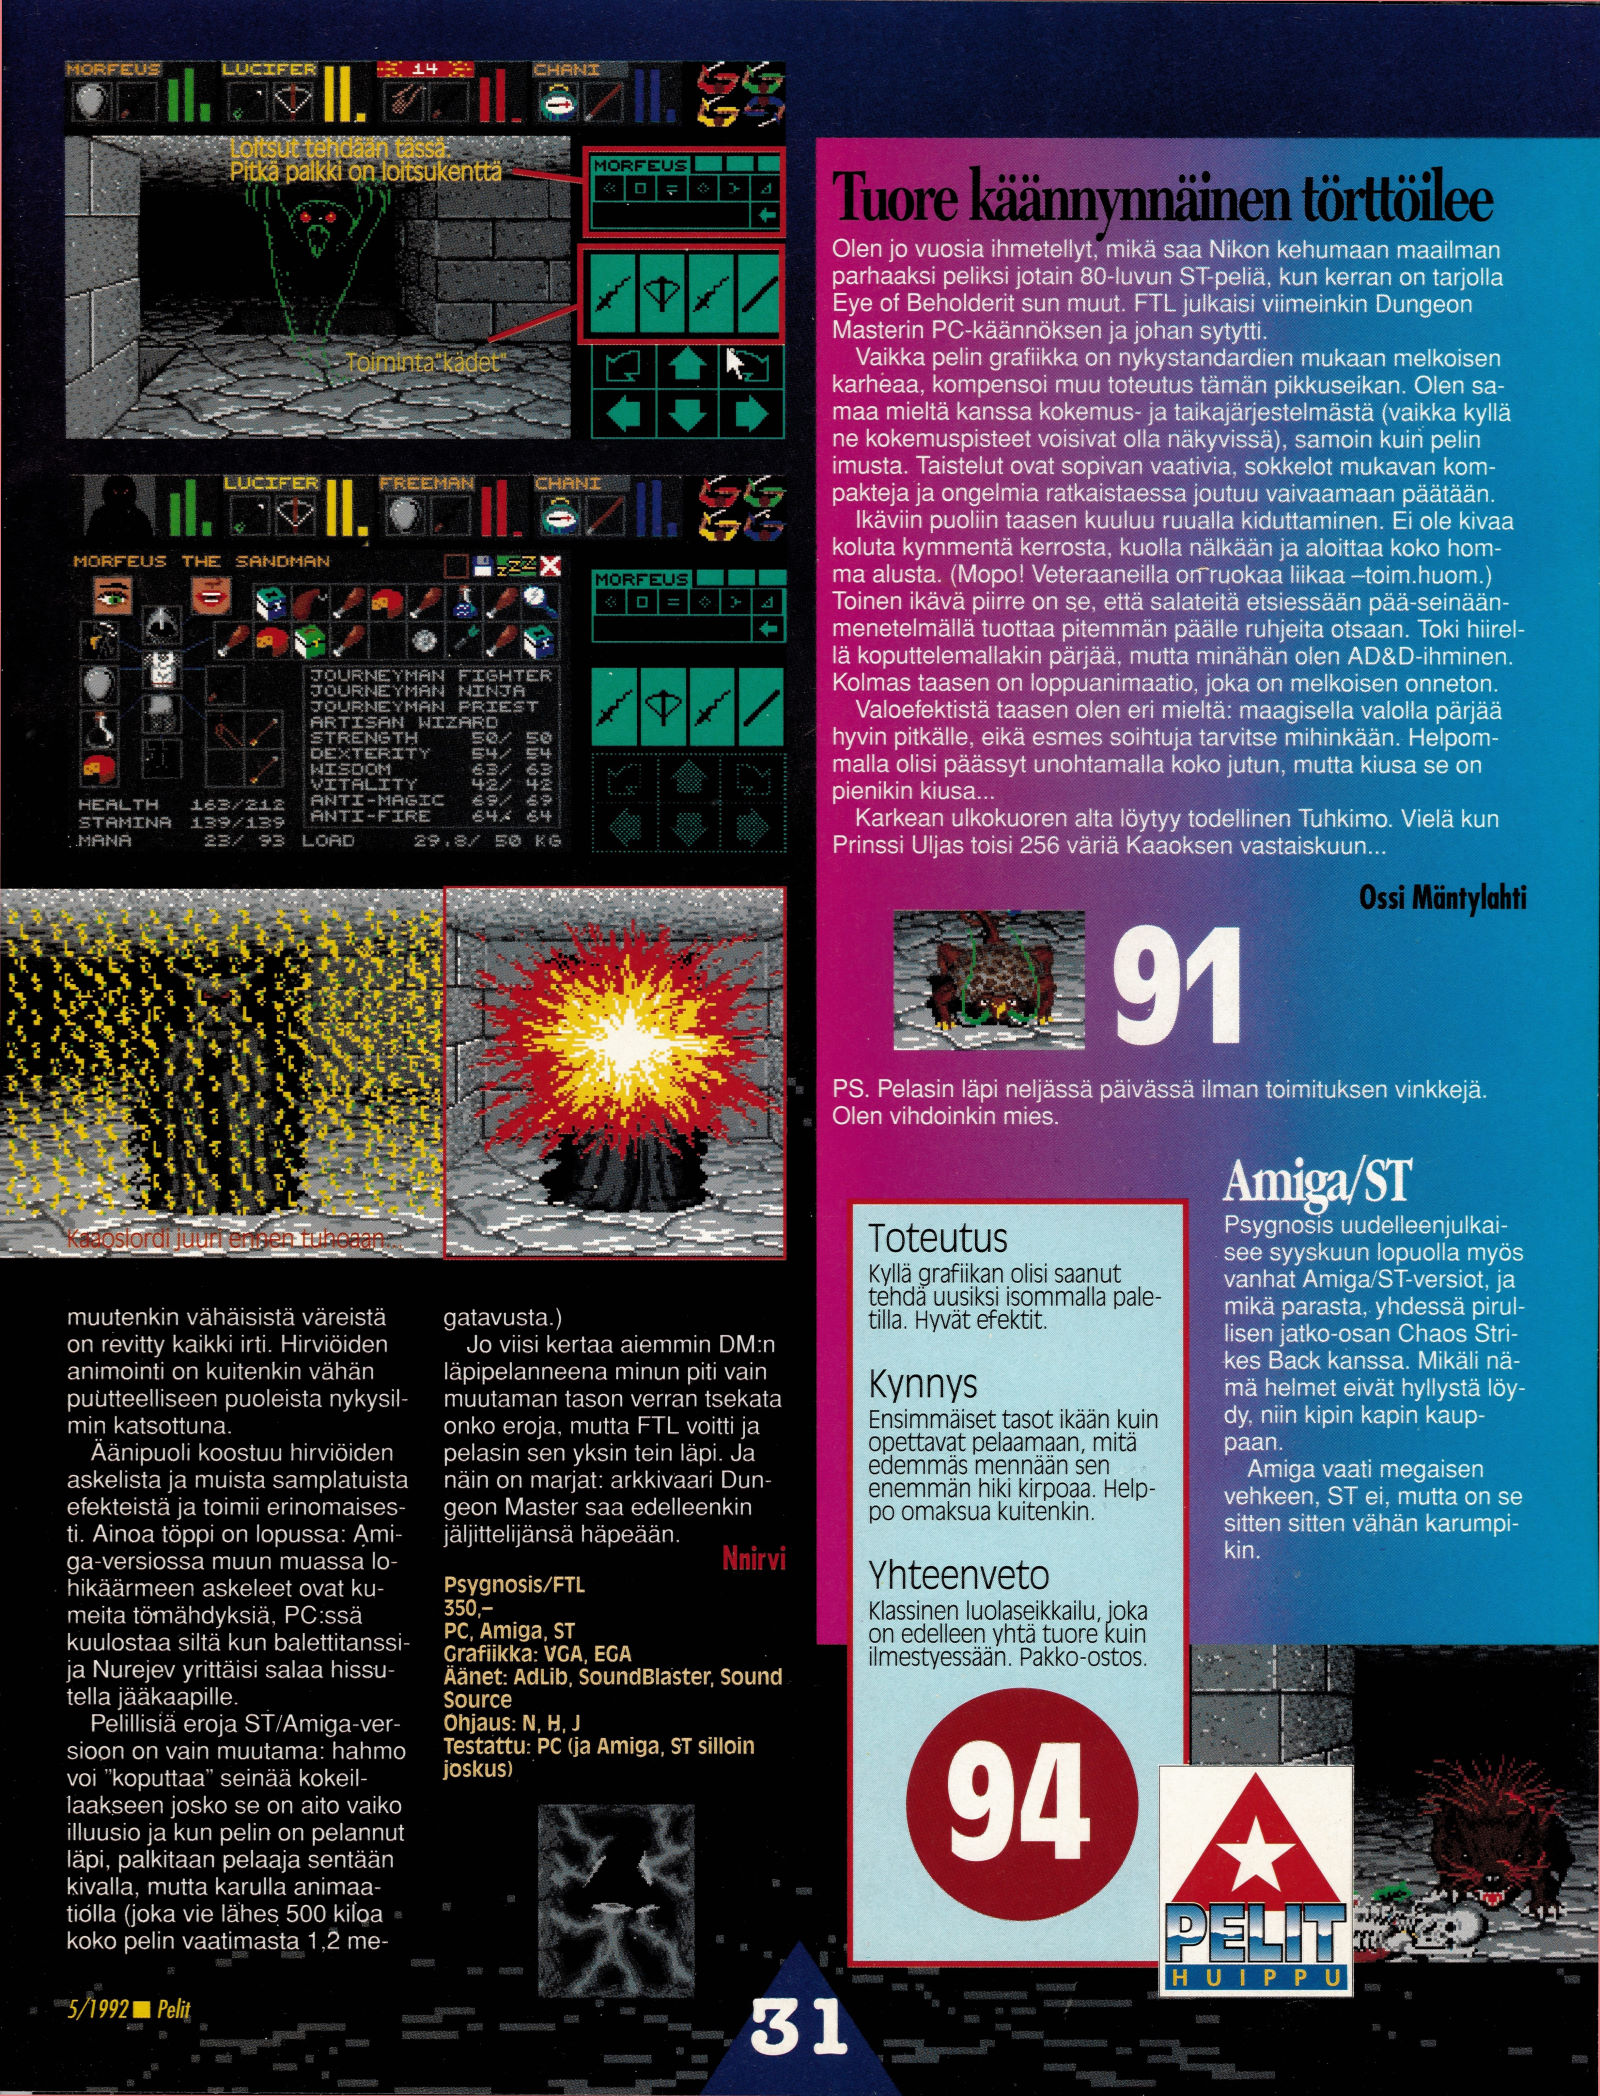 Dungeon Master for PC-Amiga-Atari ST Review published in Finnish magazine 'Pelit', May 1992, Page 31